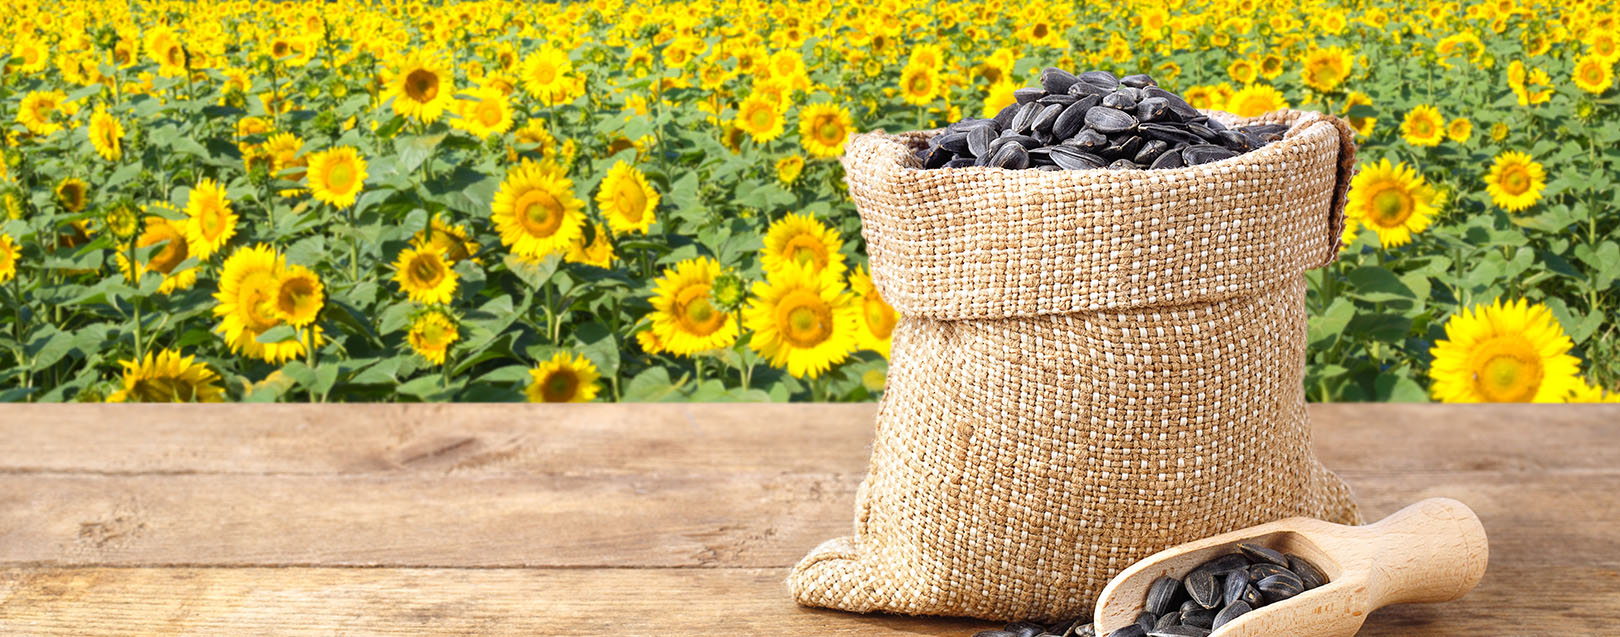 Govt cuts import duty on sunflower seeds to 10%